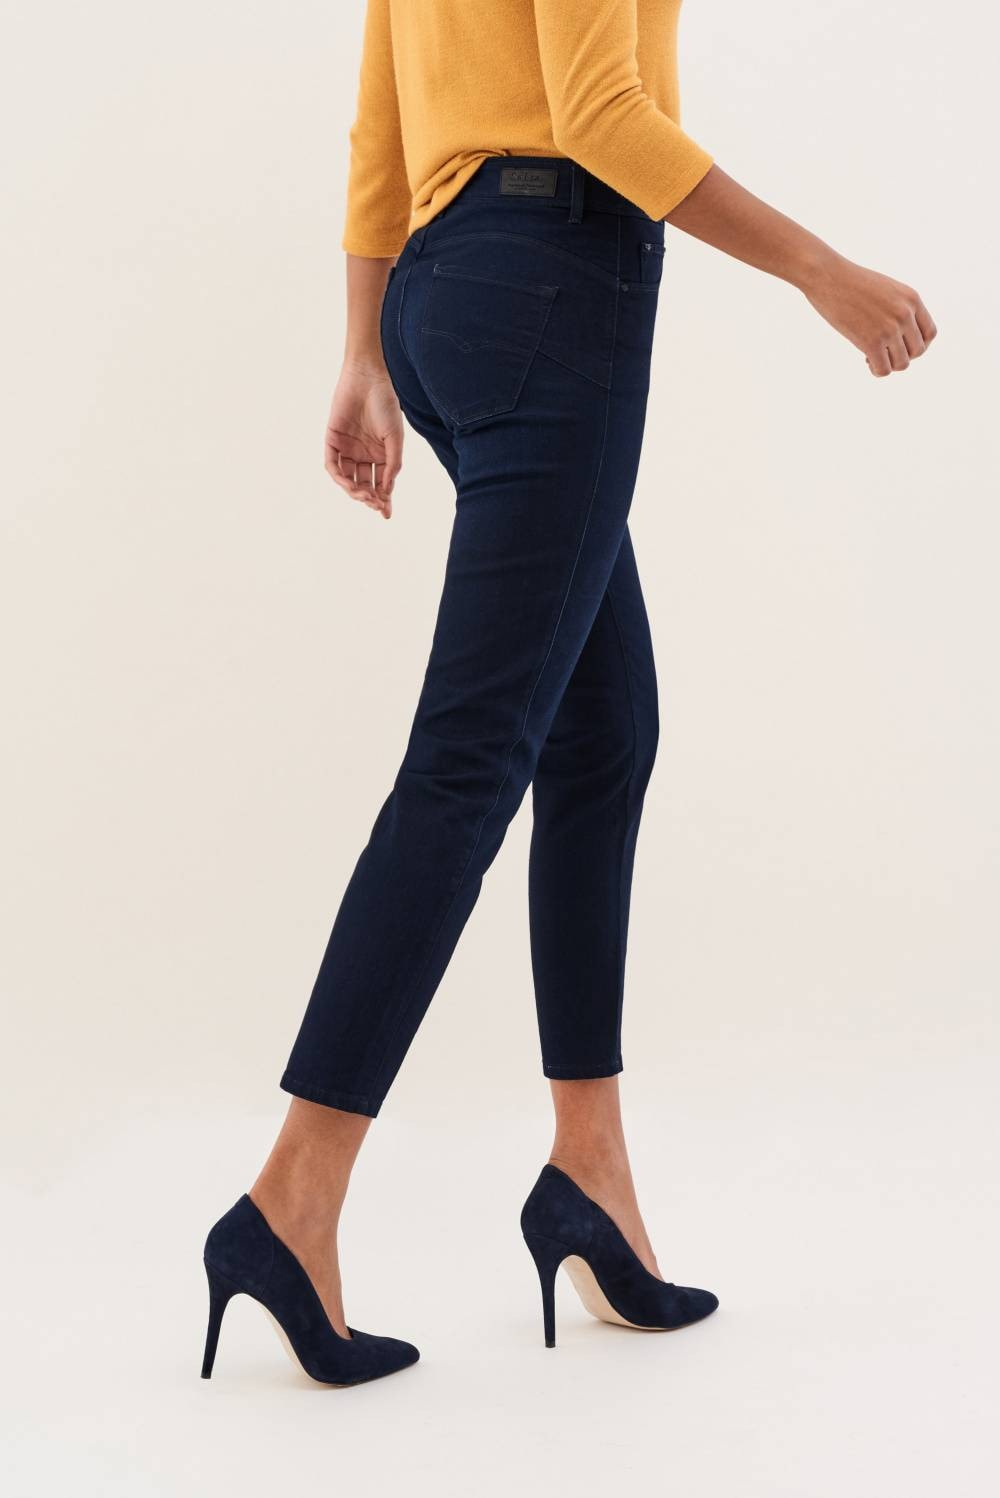 Jeans Secret Glamour, Push In, Caprihose, - Salsa